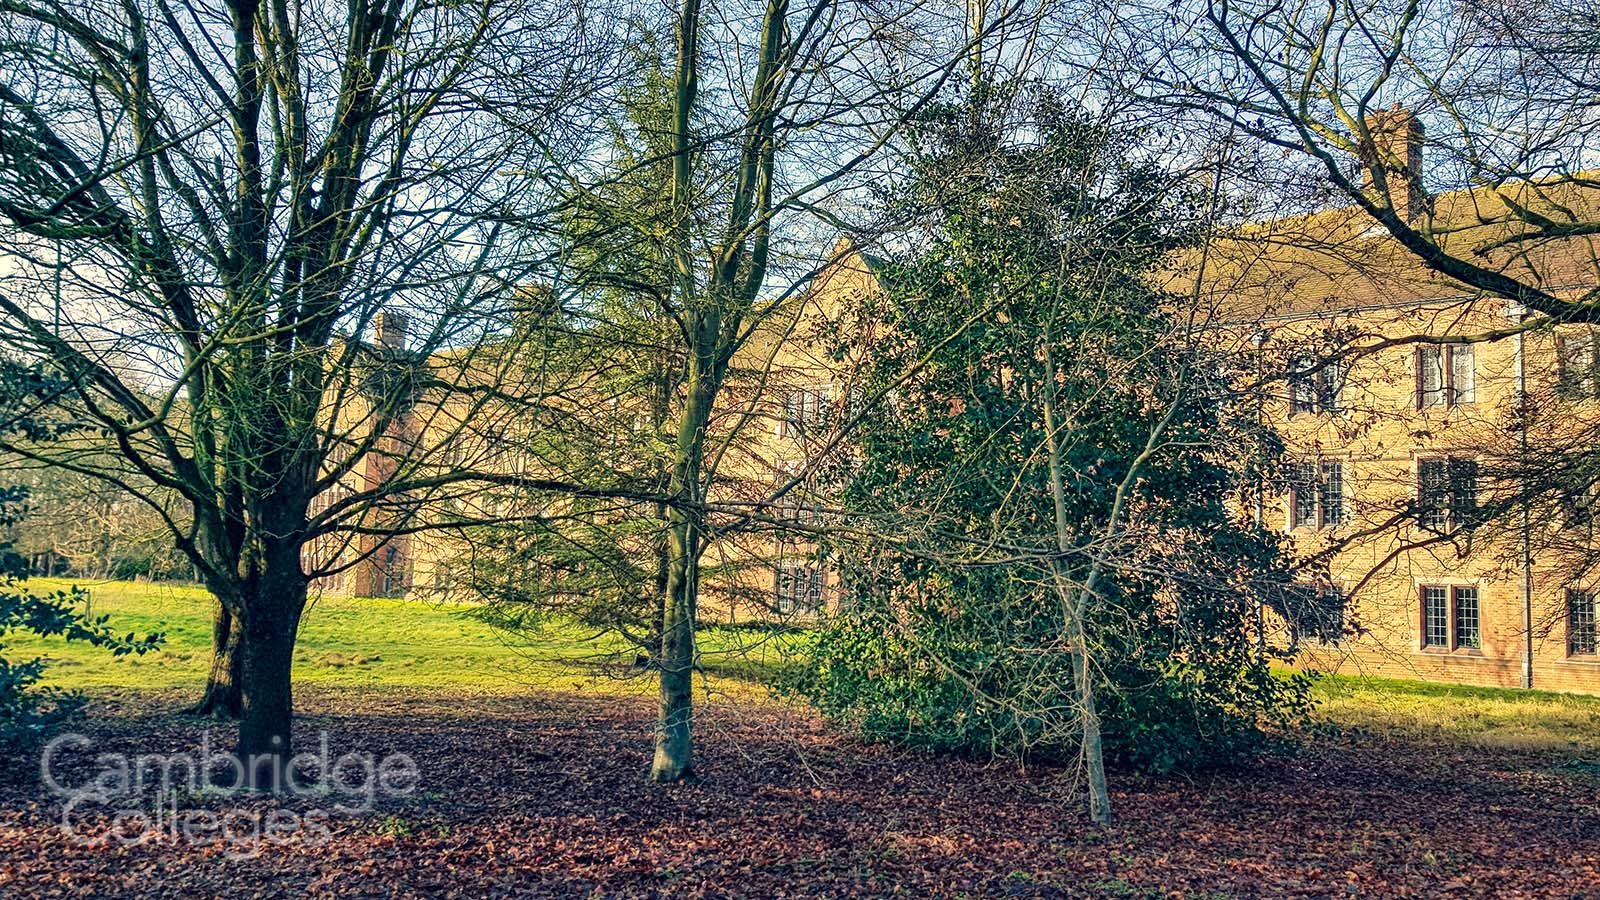 Trees in the grounds of Girton college, Cambridge